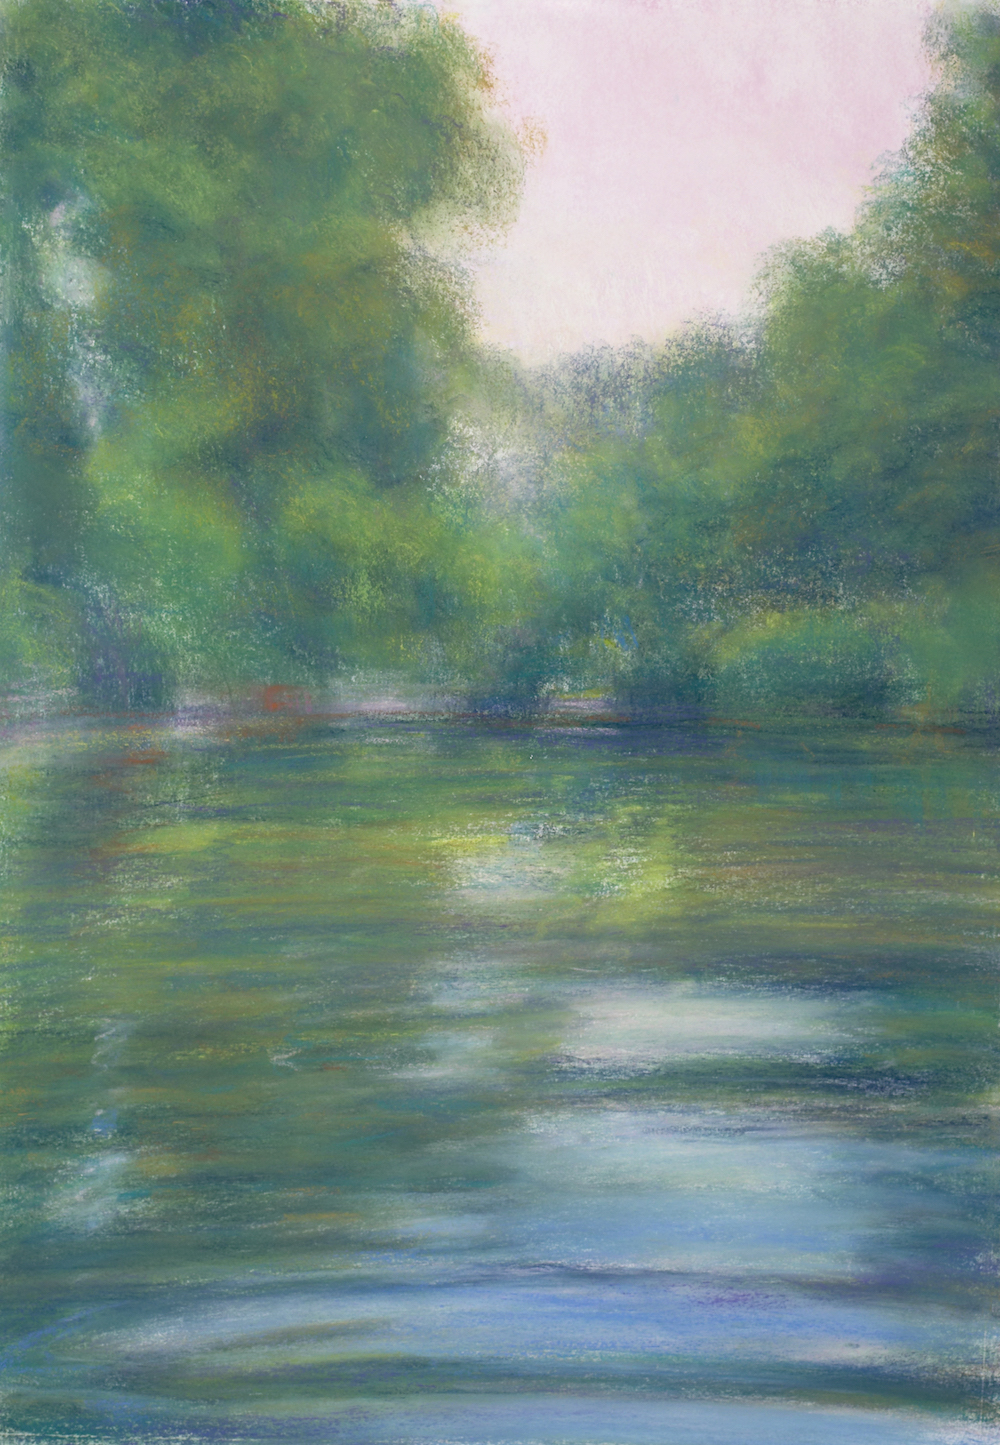 Green River, Summer Dusk, Pastel, 20 1/2 x 14""